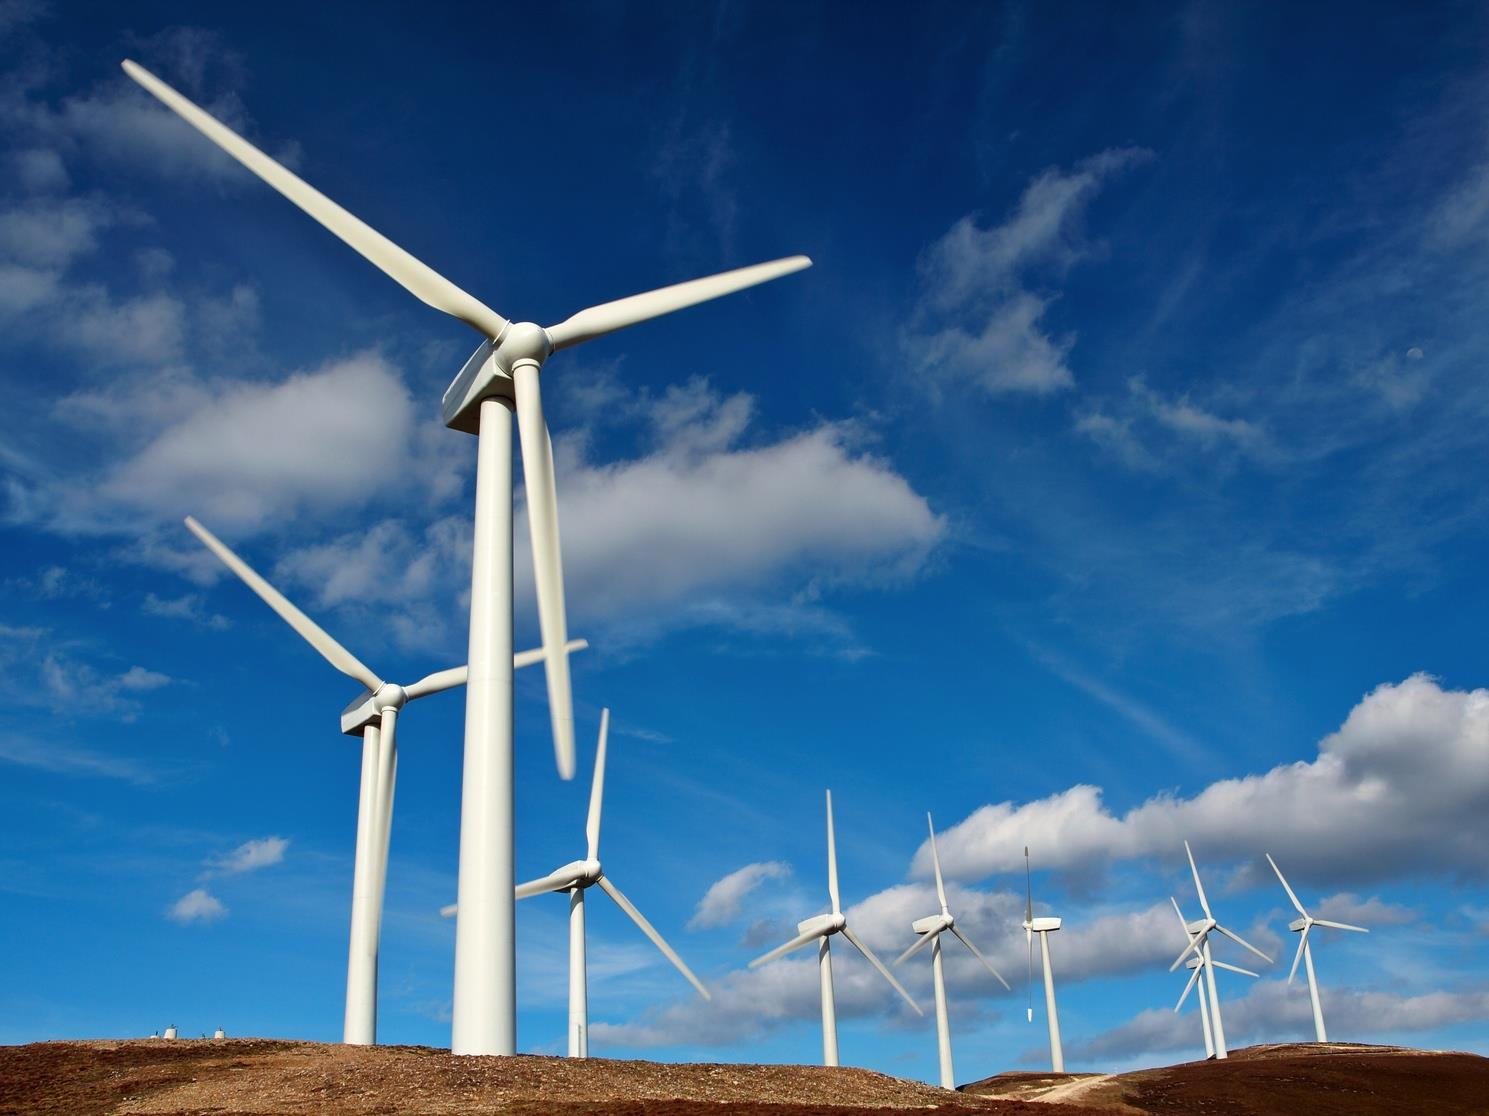 Grid pays 6m to turn off wind farm turbines Wind